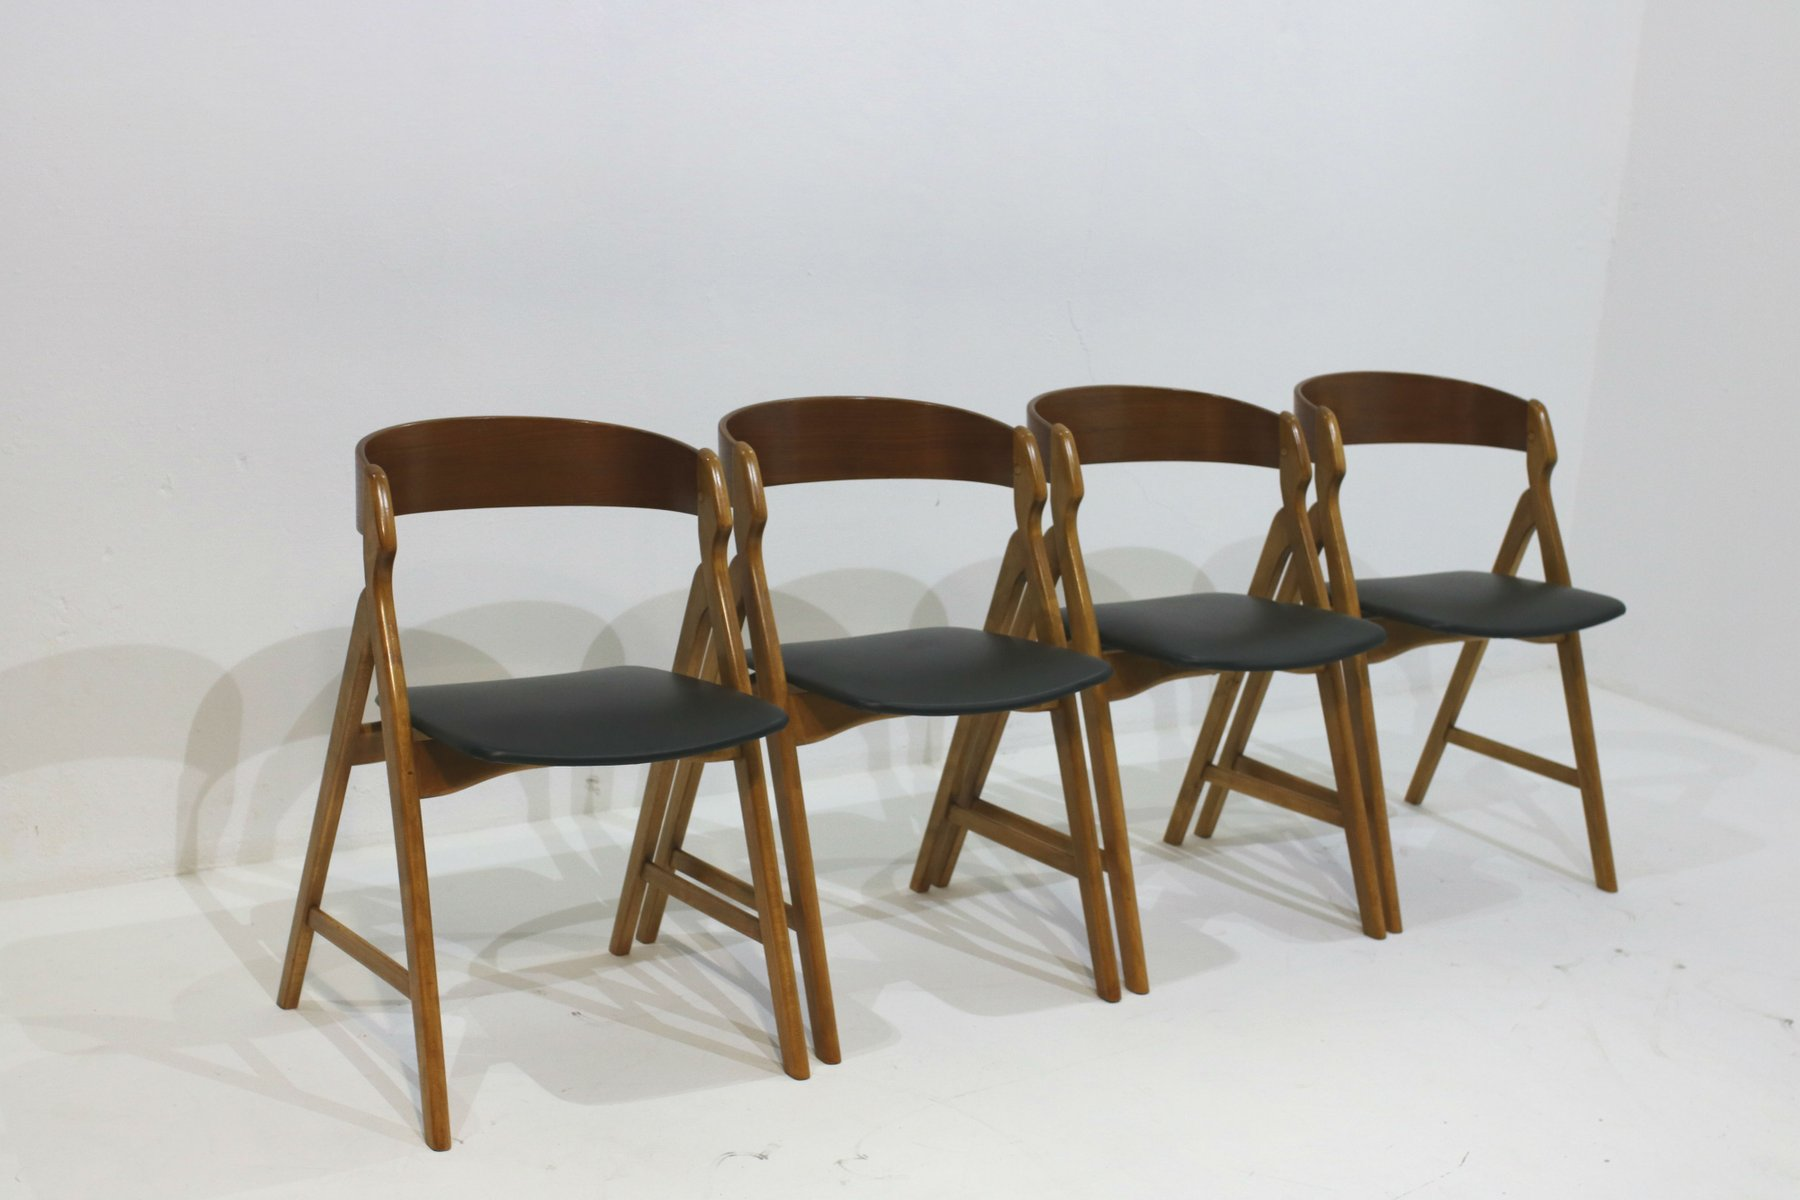 Vintage Dining Chairs by Henning Kjaernulf Set of 4 for sale at